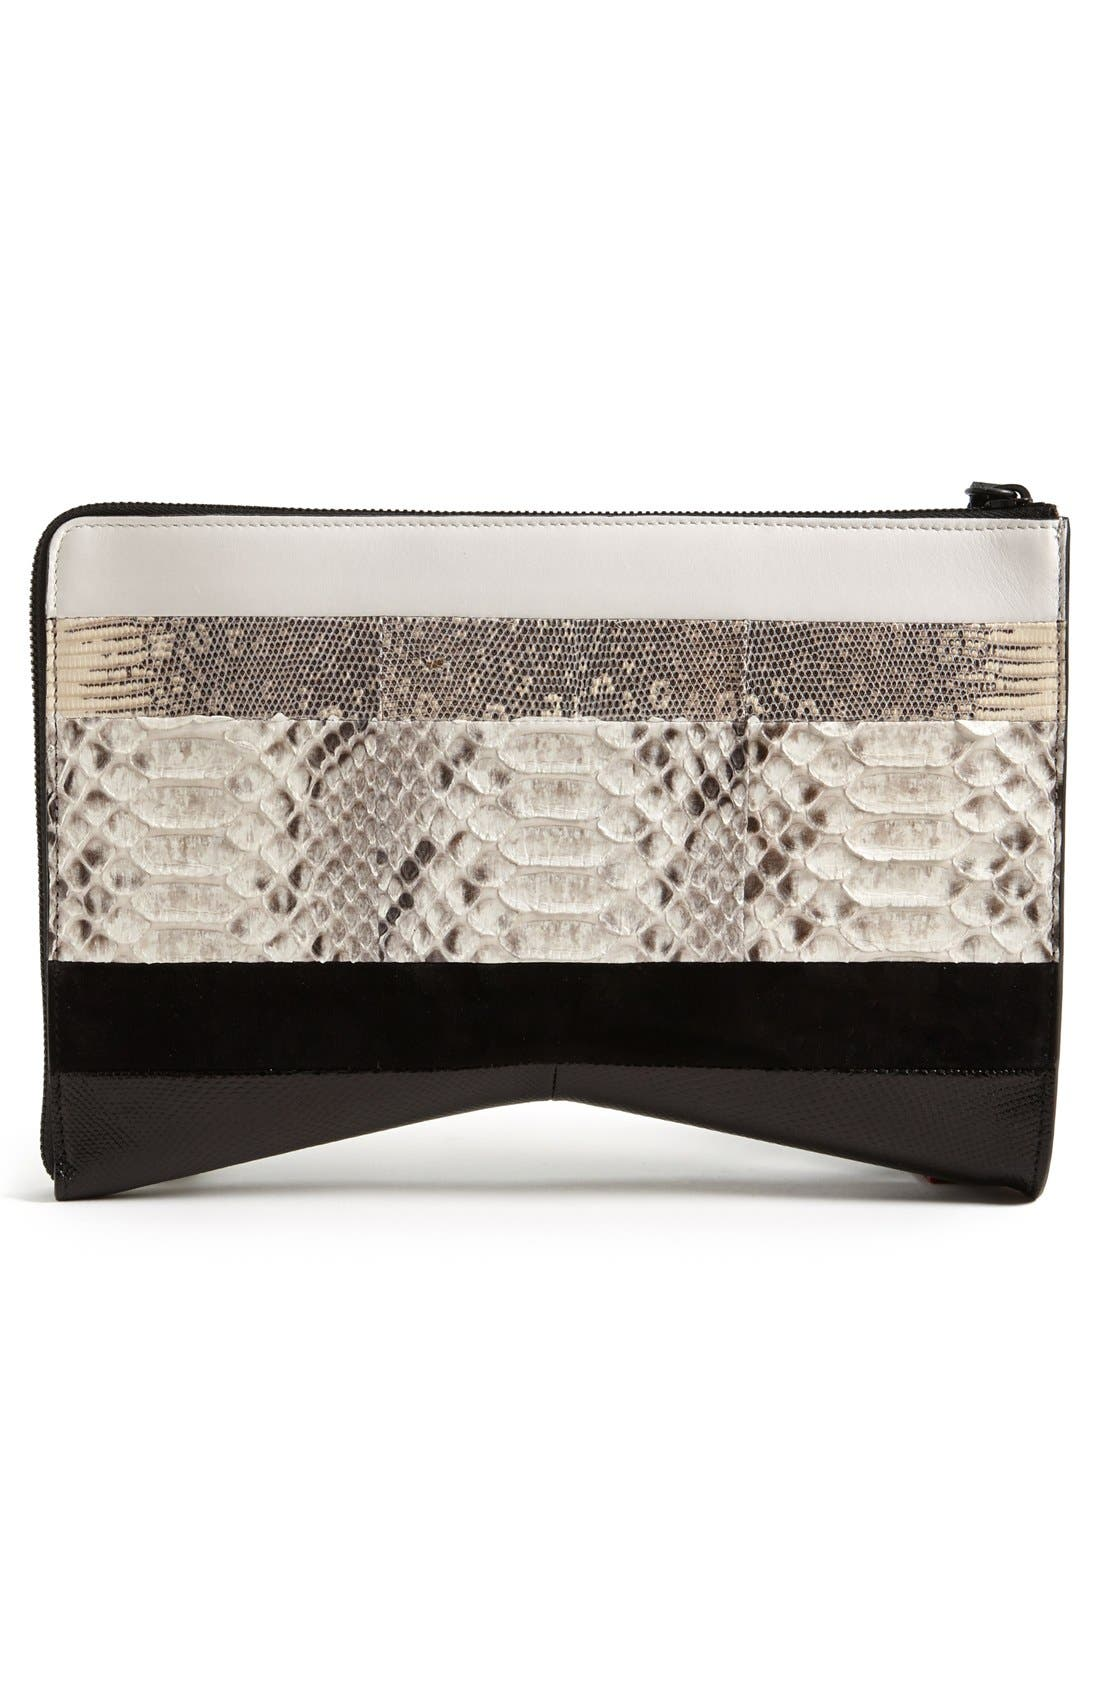 Main Image - Narciso Rodriguez 'Boomerang' Genuine Python, Lizard & Leather Clutch